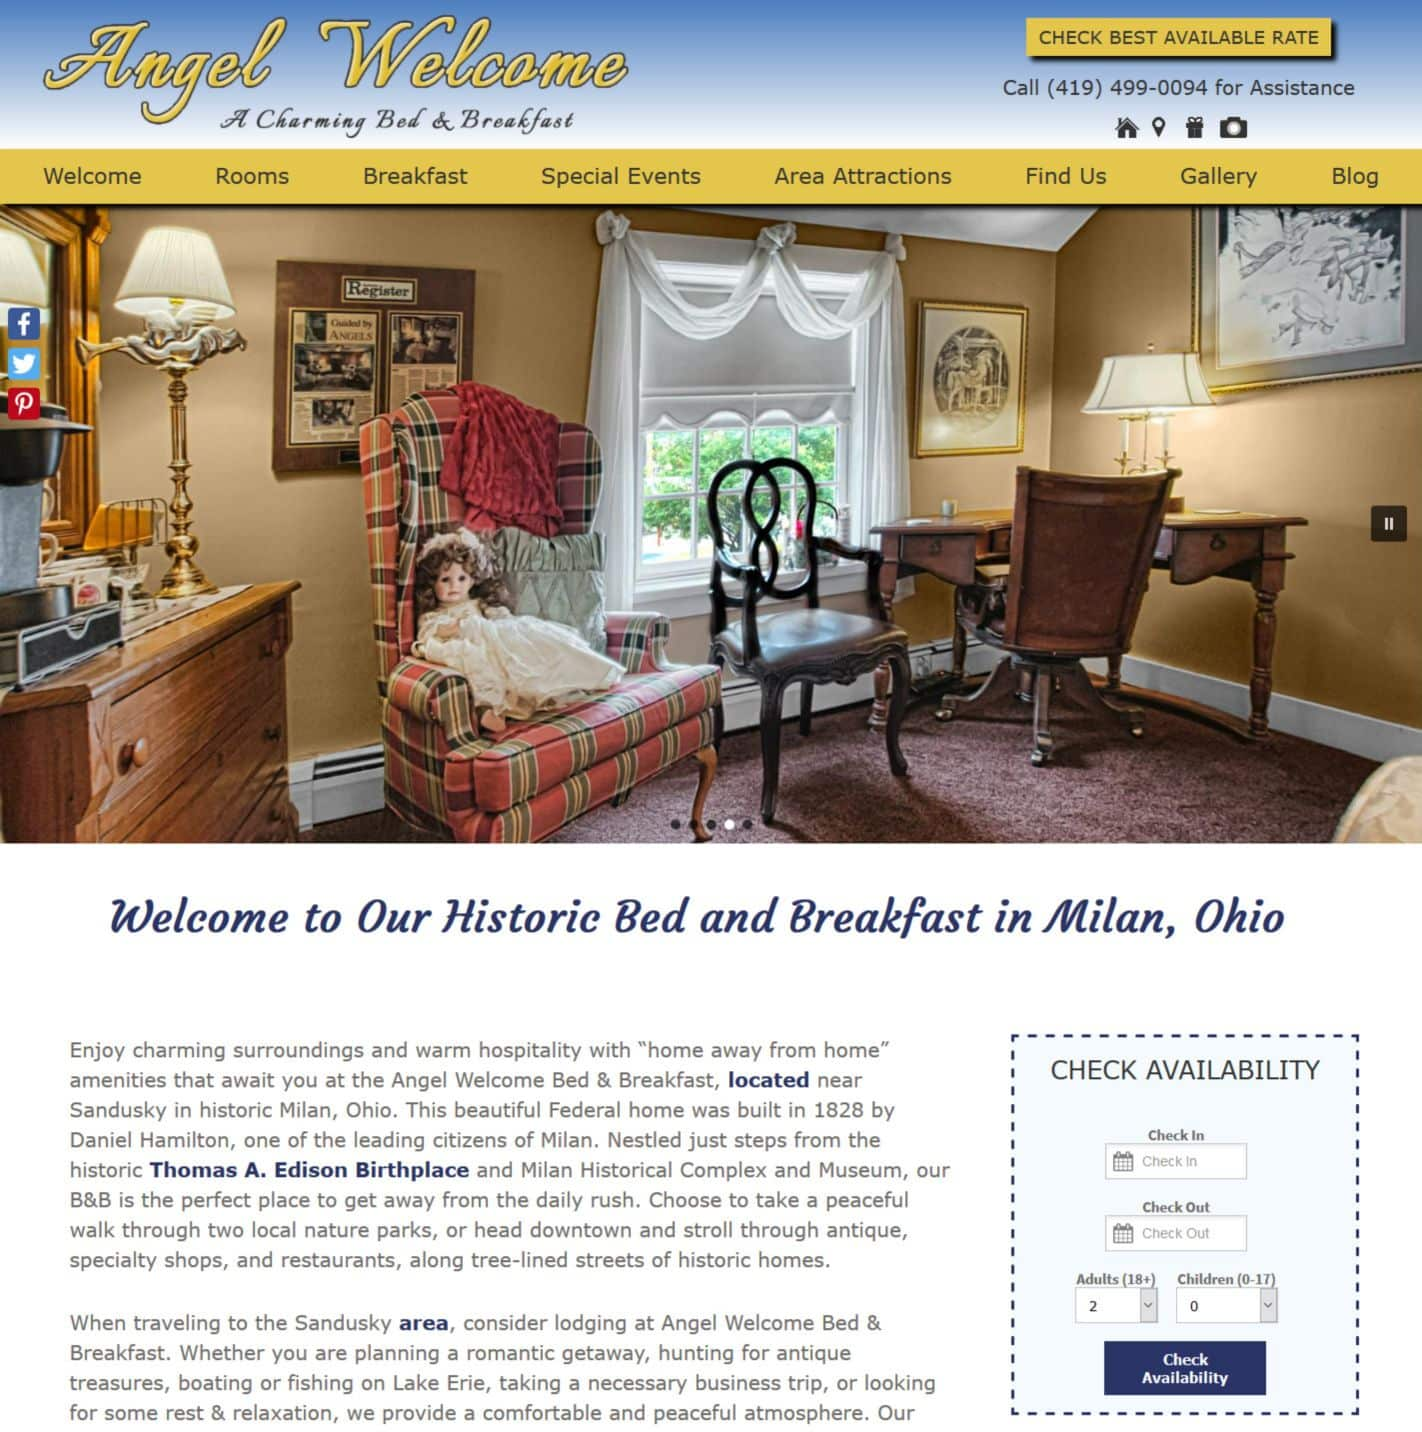 Angel Welcome Bed & Breakfast website home page screenshot